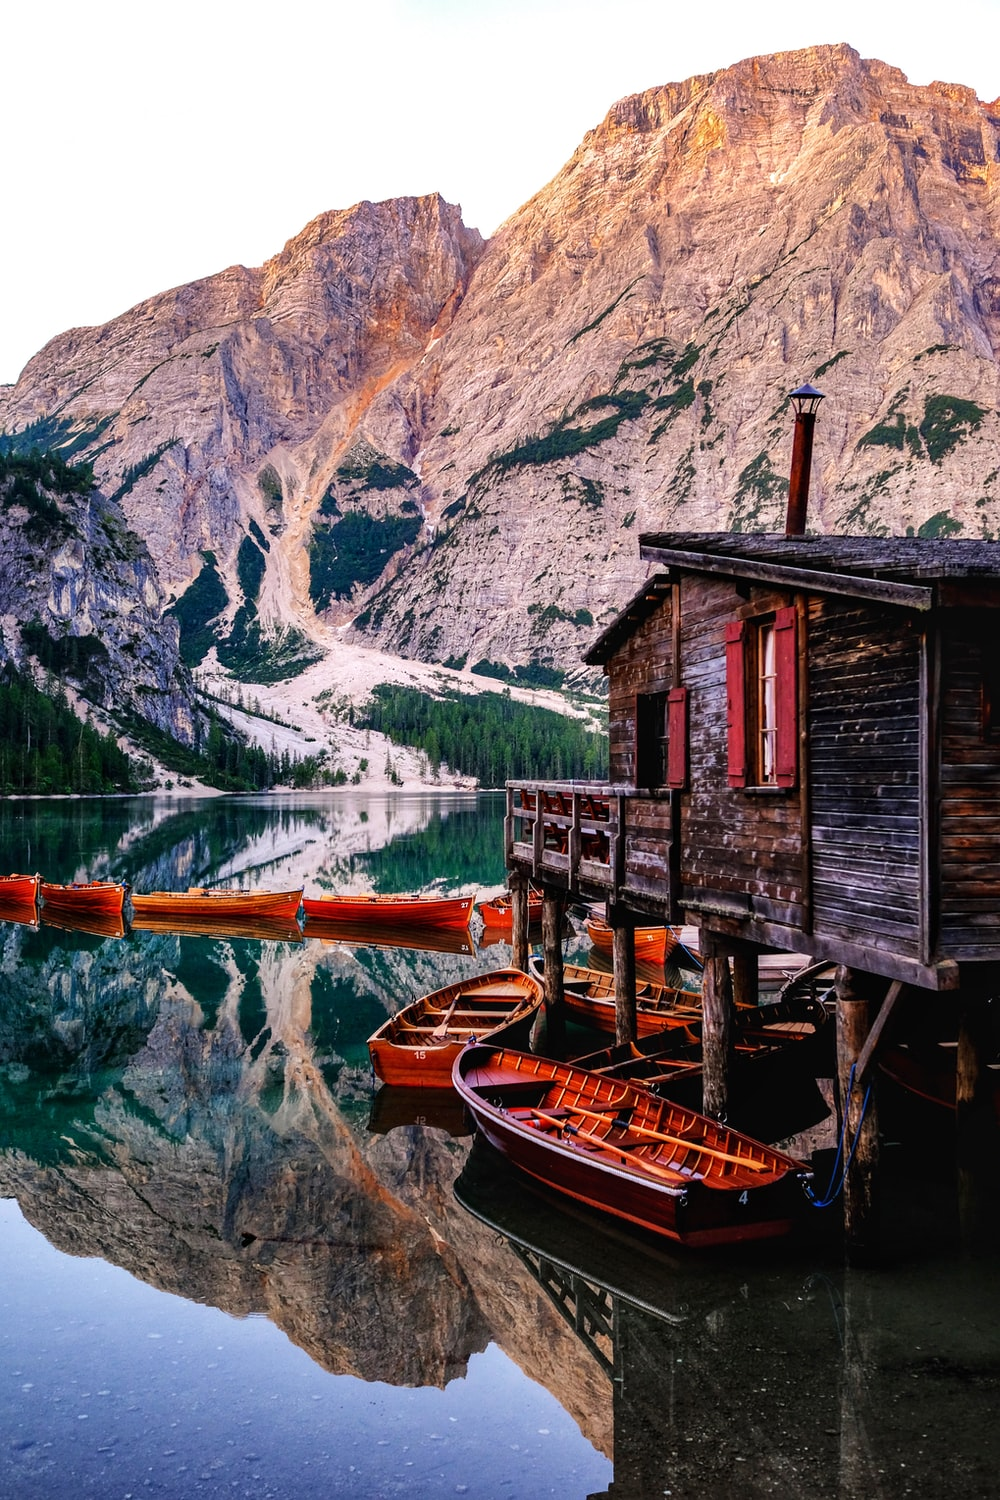 red wooden house beside body of water